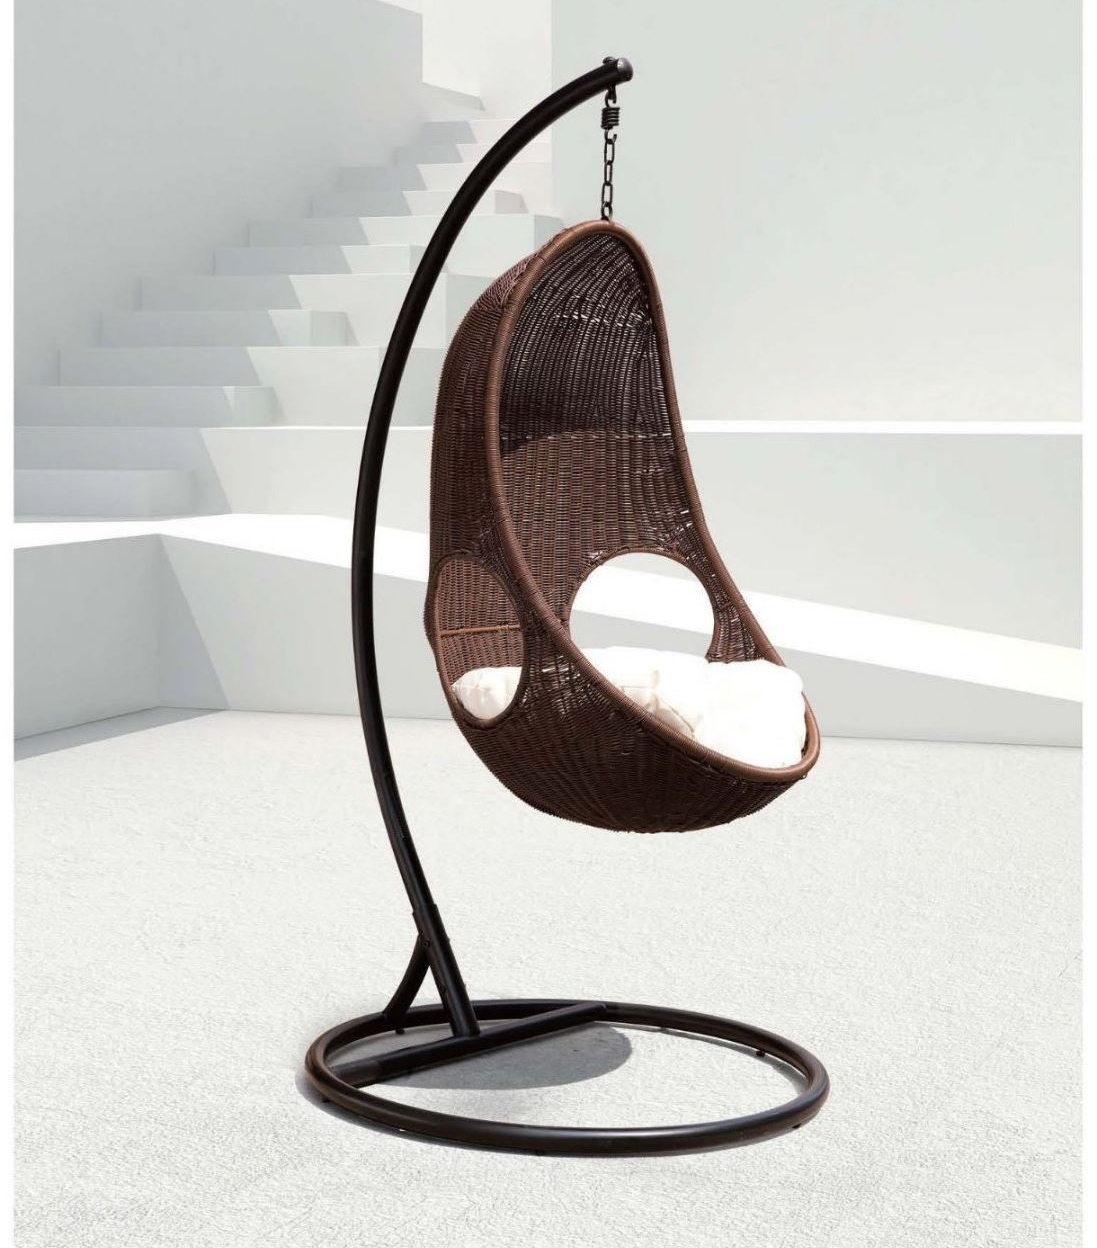 Hanging Egg Chairs Review Wicker Swing Chair By Panama Jack